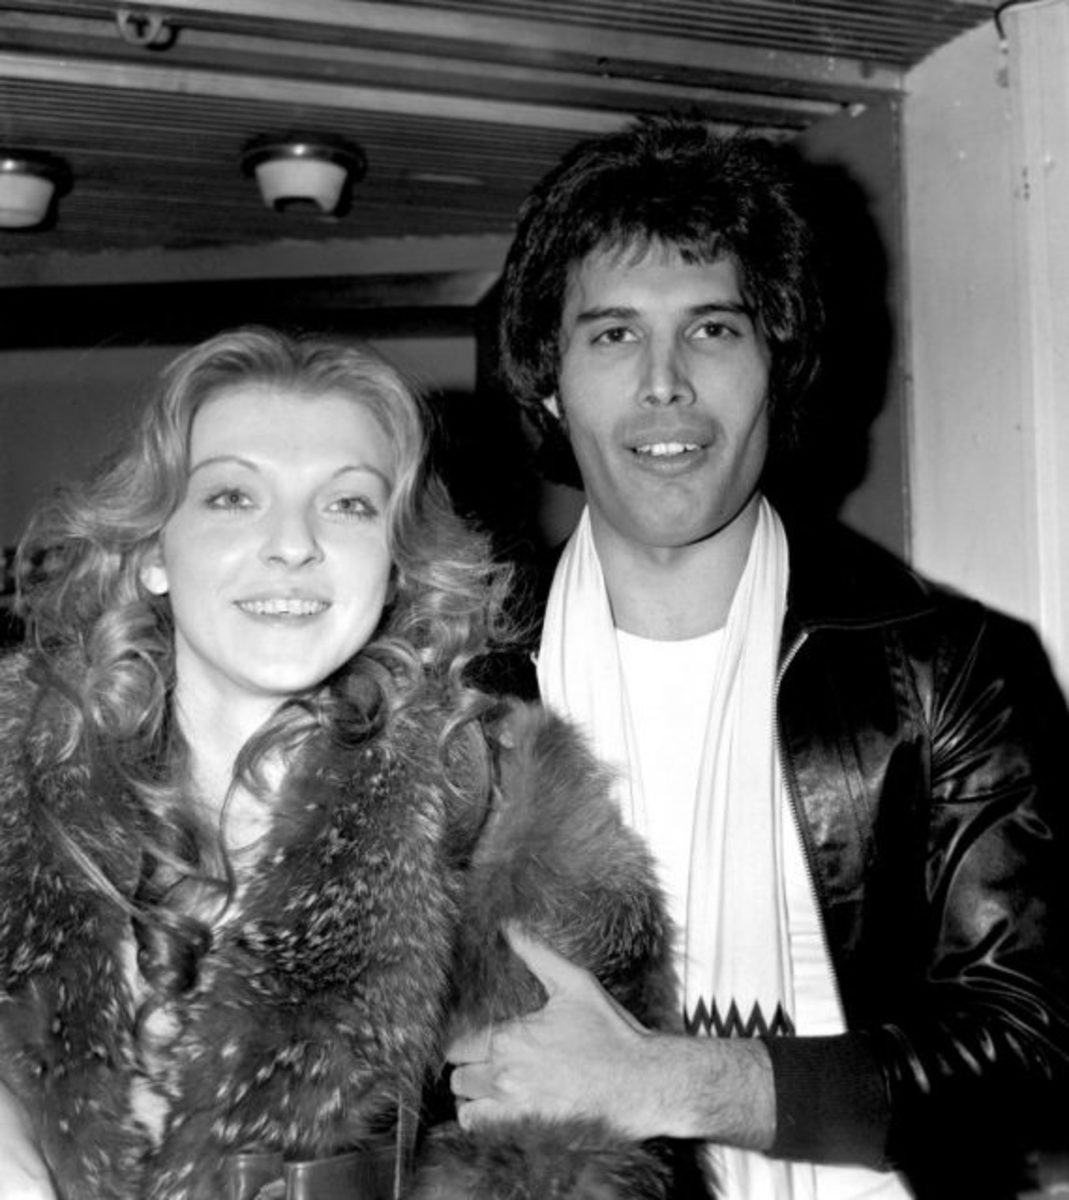 Starstruck lovers. (Photo: Monitor Picture Library/Photoshot/Getty Images)